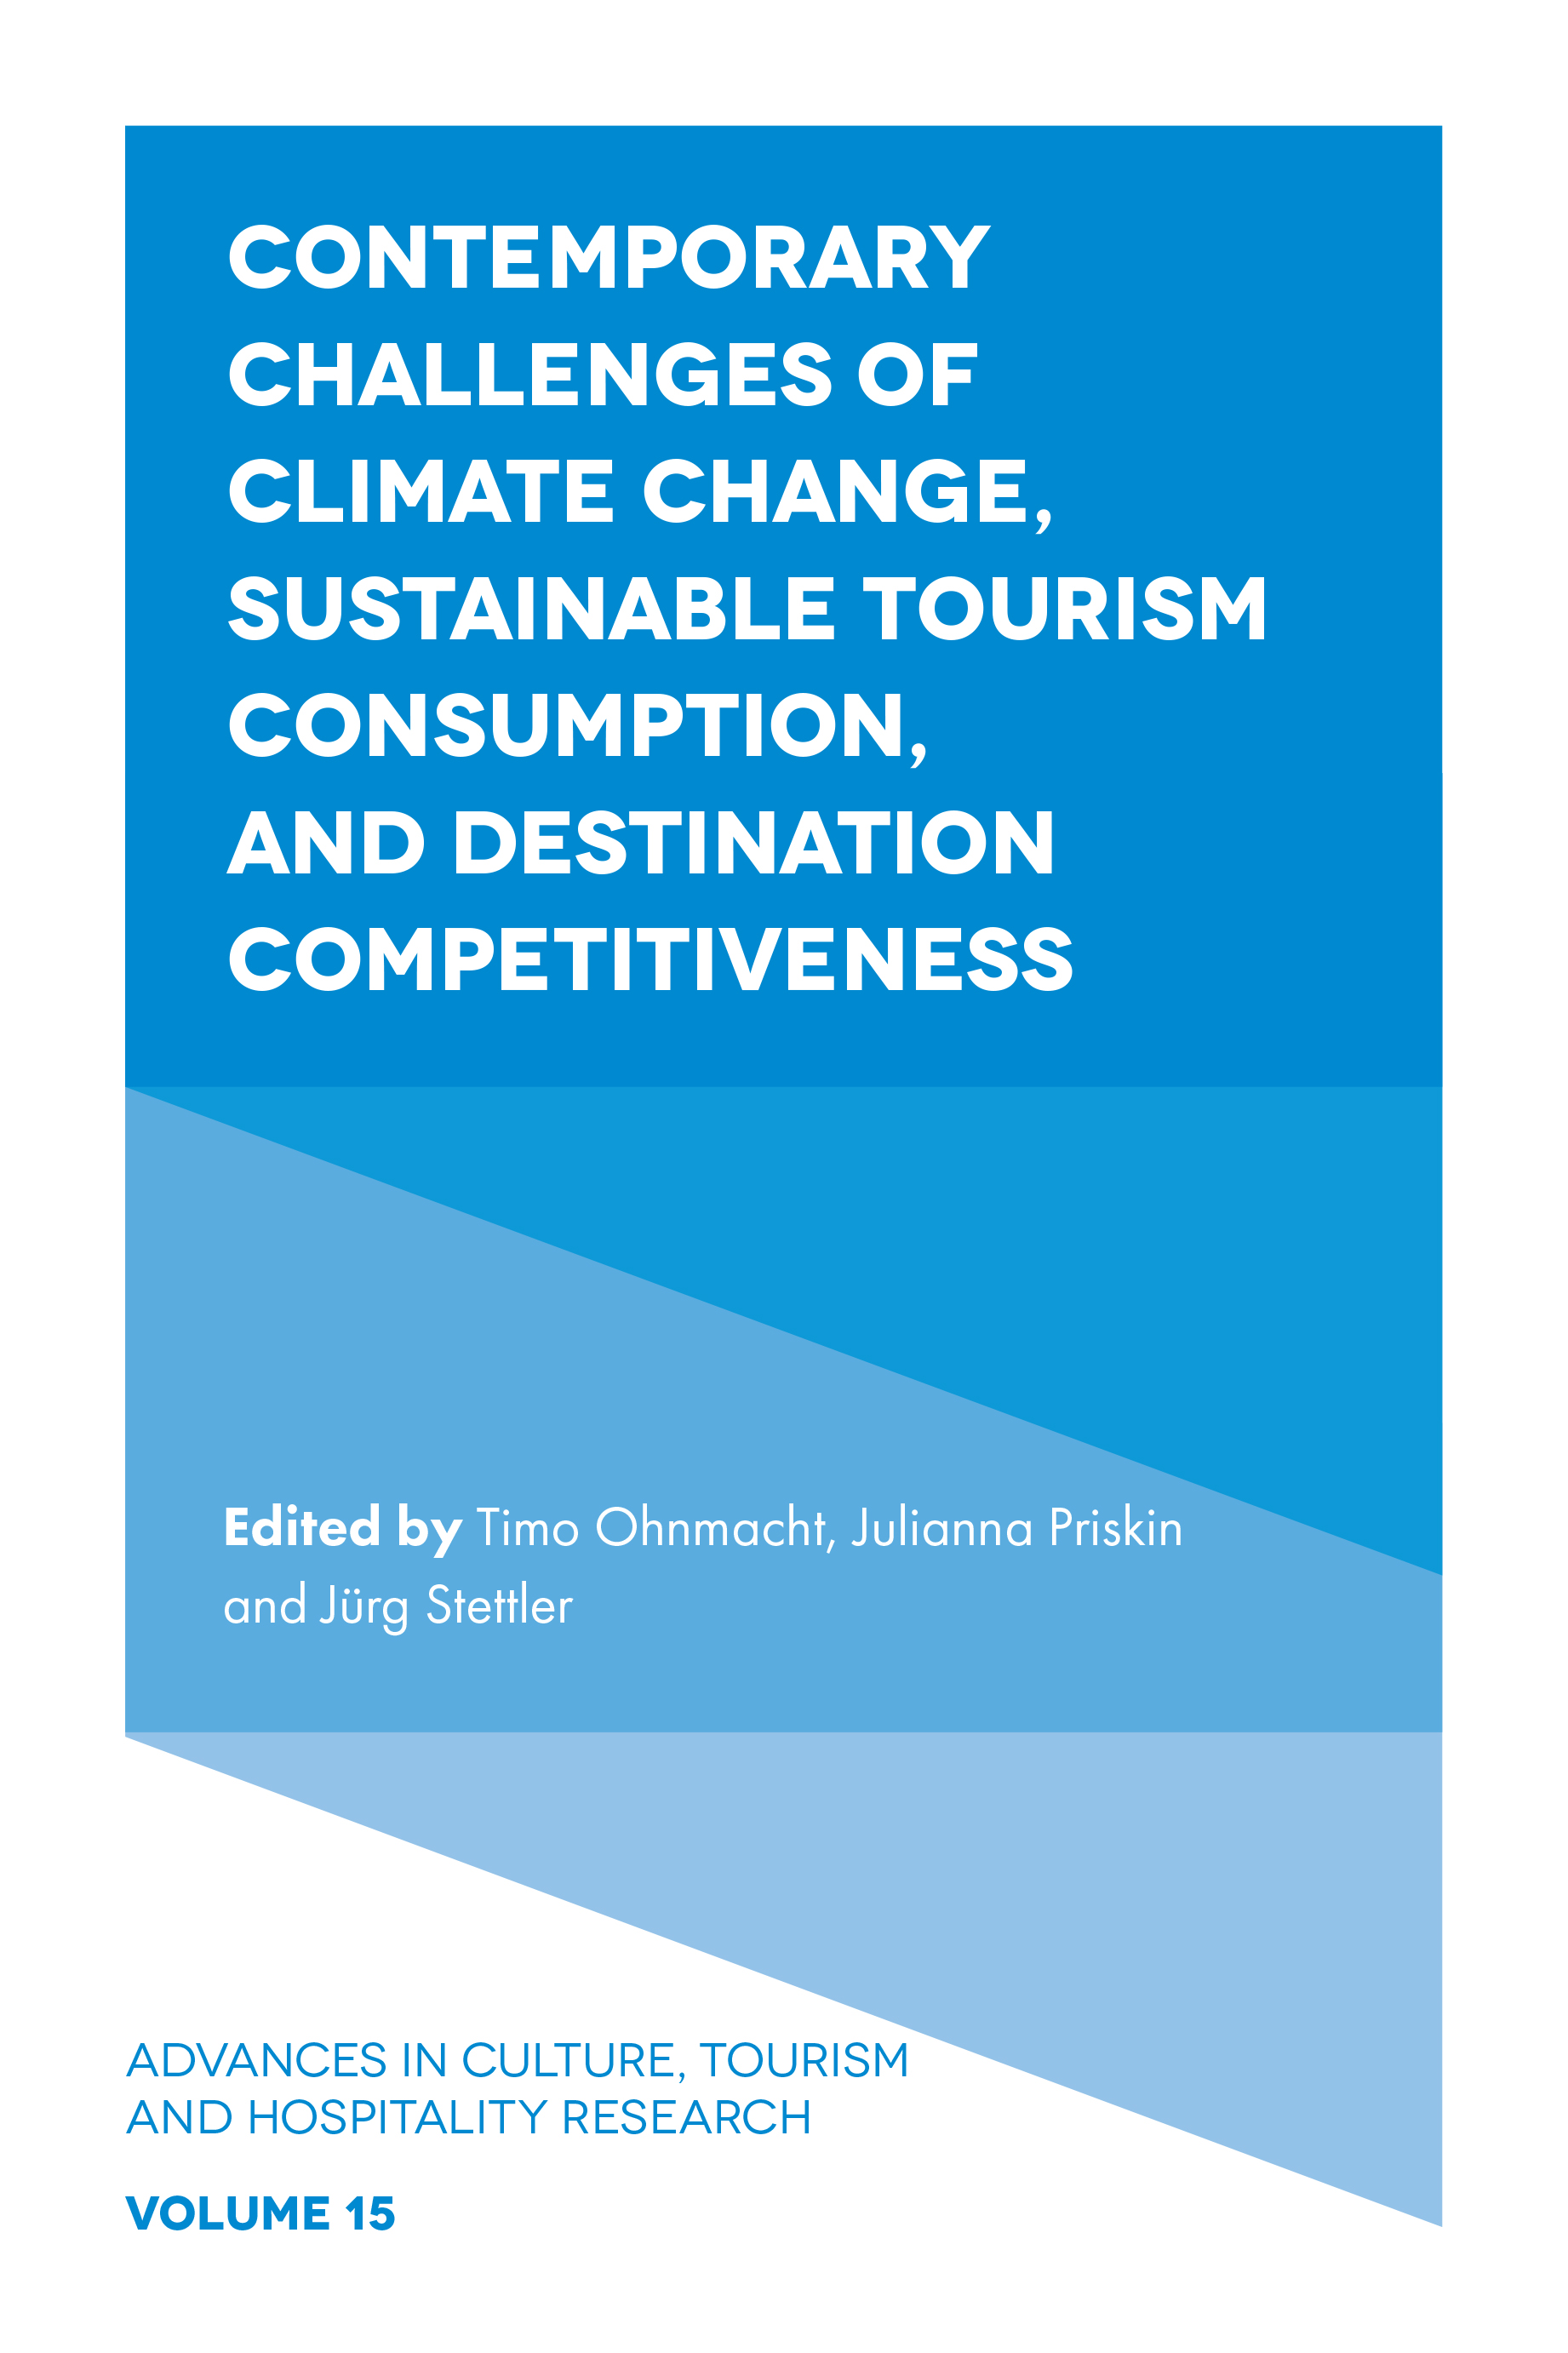 Book cover for Contemporary Challenges of Climate Change, Sustainable Tourism Consumption, and Destination Competitiveness a book by Timo  Ohnmacht, Julianna  Priskin, Jürg  Stettler